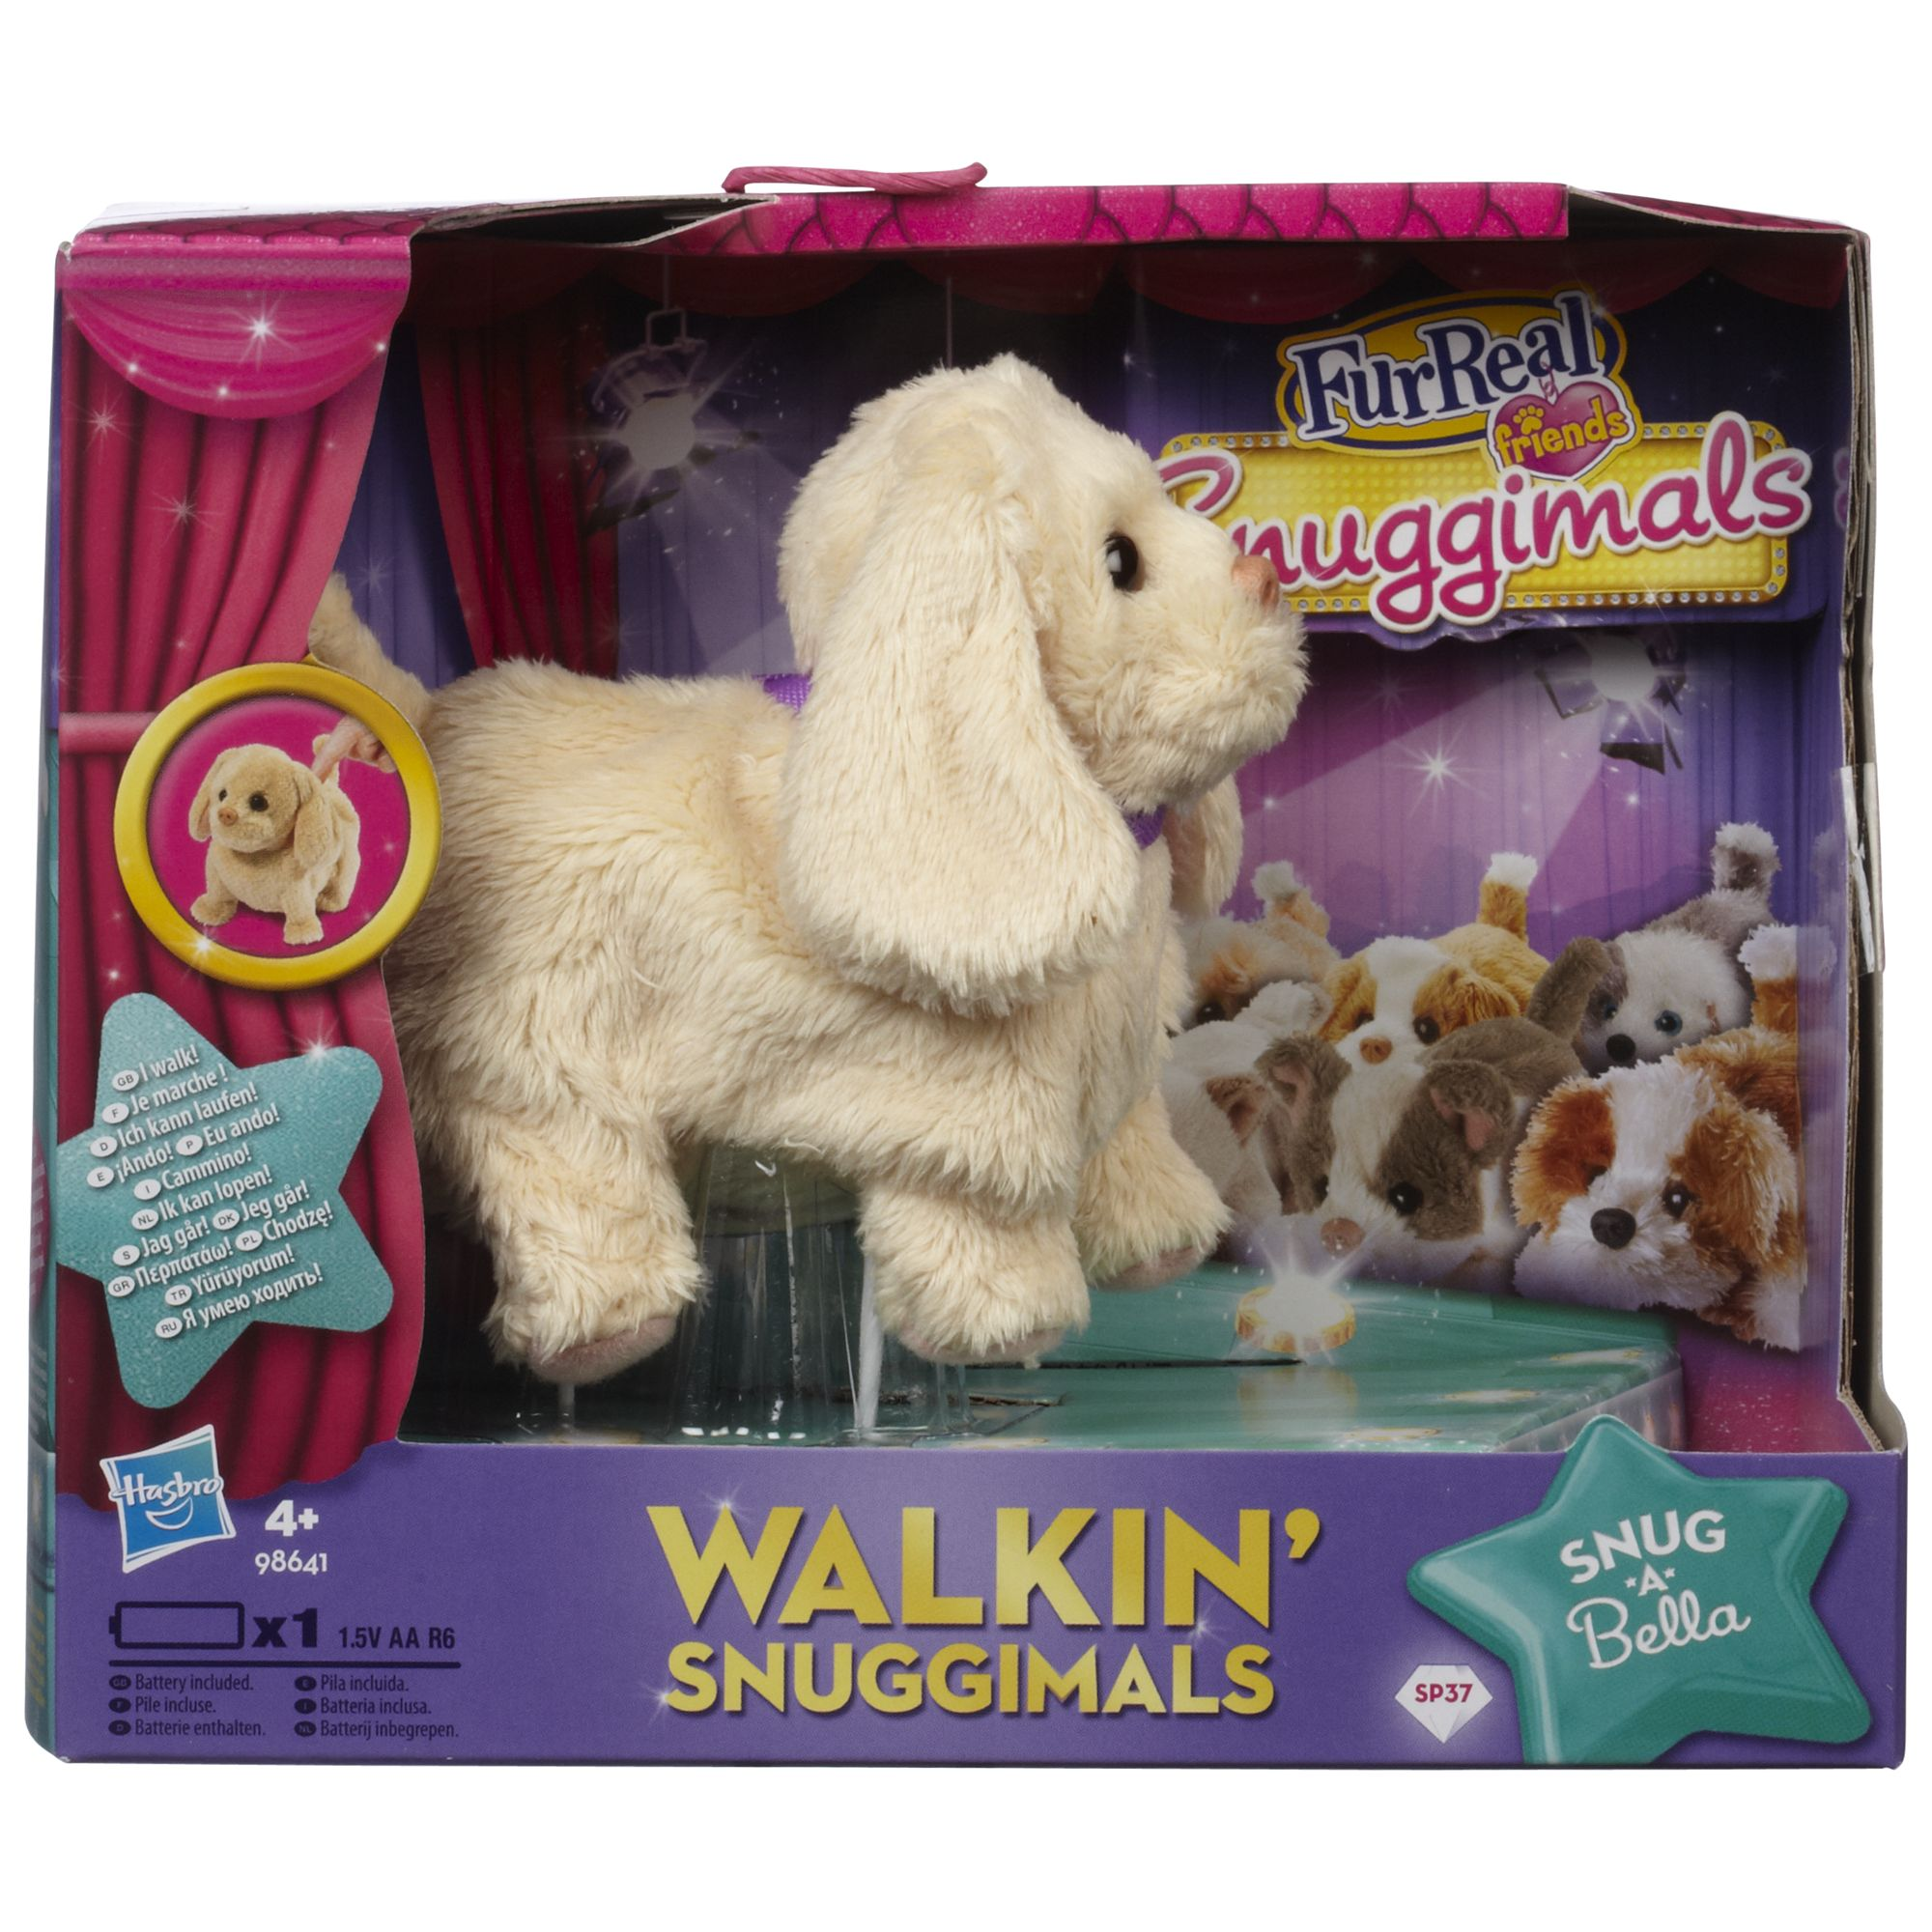 FurReal Walking Snuggimal, Assorted